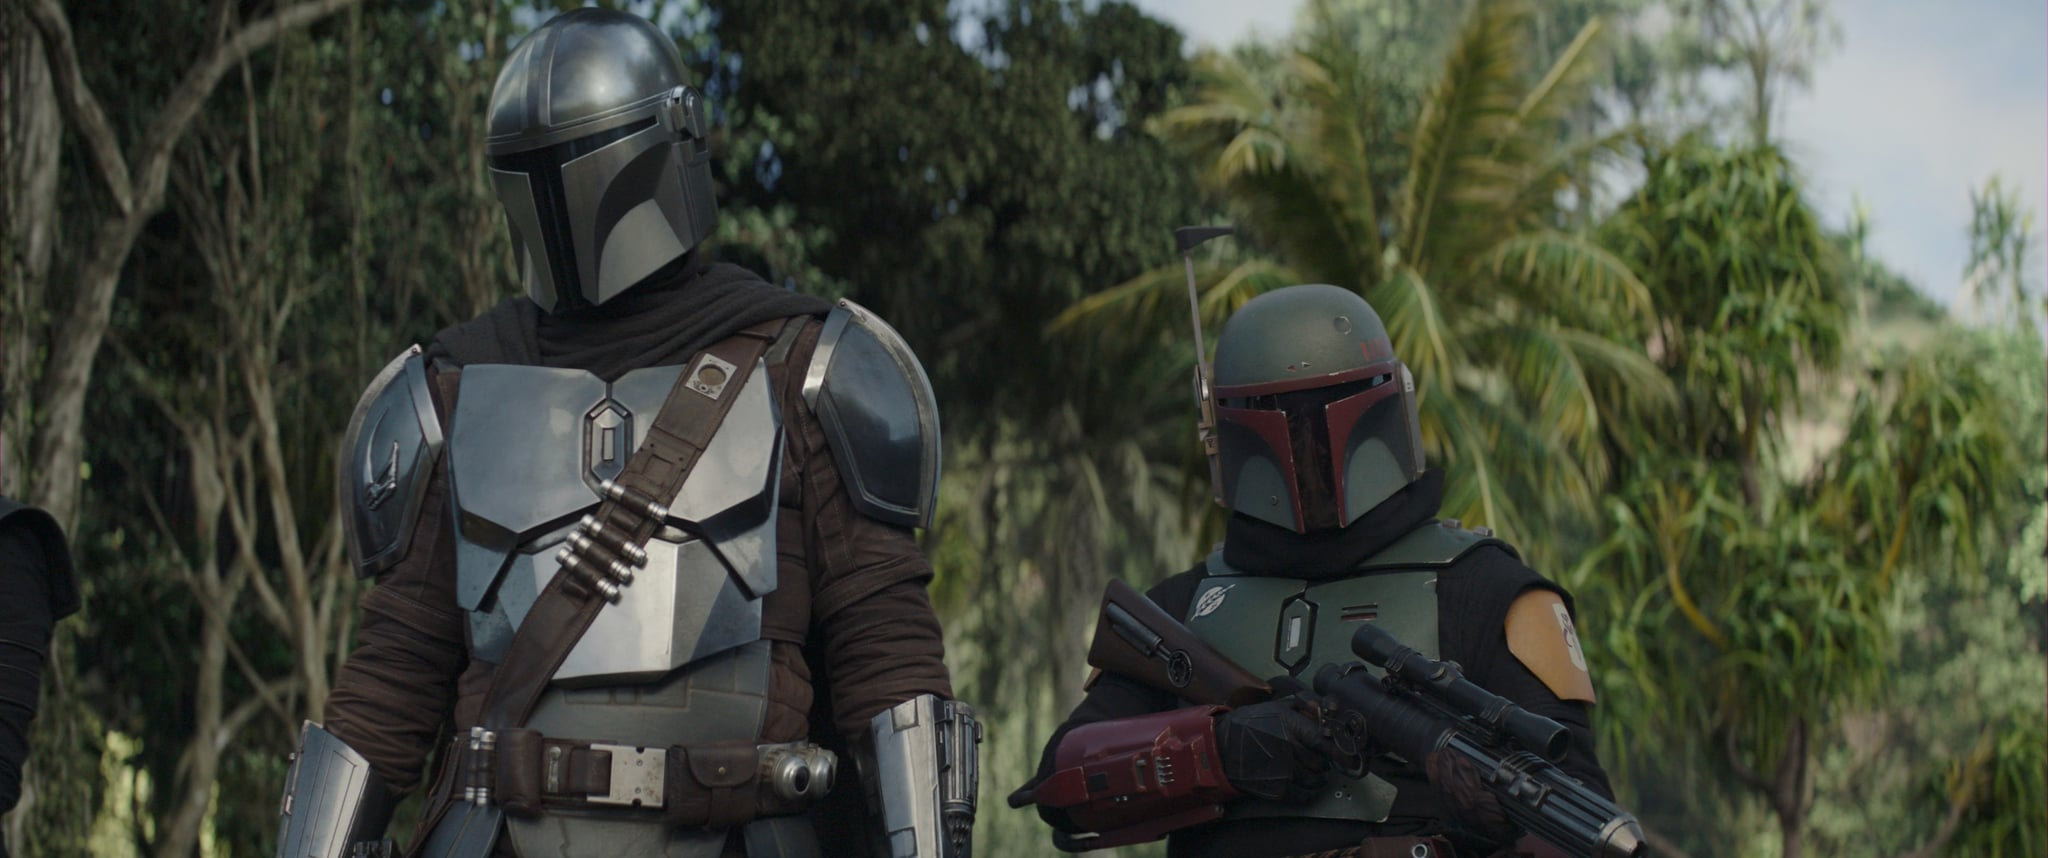 THE MANDALORIAN, from left: Pedro Pascal as The Mandalorian, Temuera Morrison as Boba Fett, 'Chapter 15: The Believer', (Season 2, ep. 207, aired Dec. 11, 2020). photo: Disney+/Lucasfilm / Courtesy Everett Collection